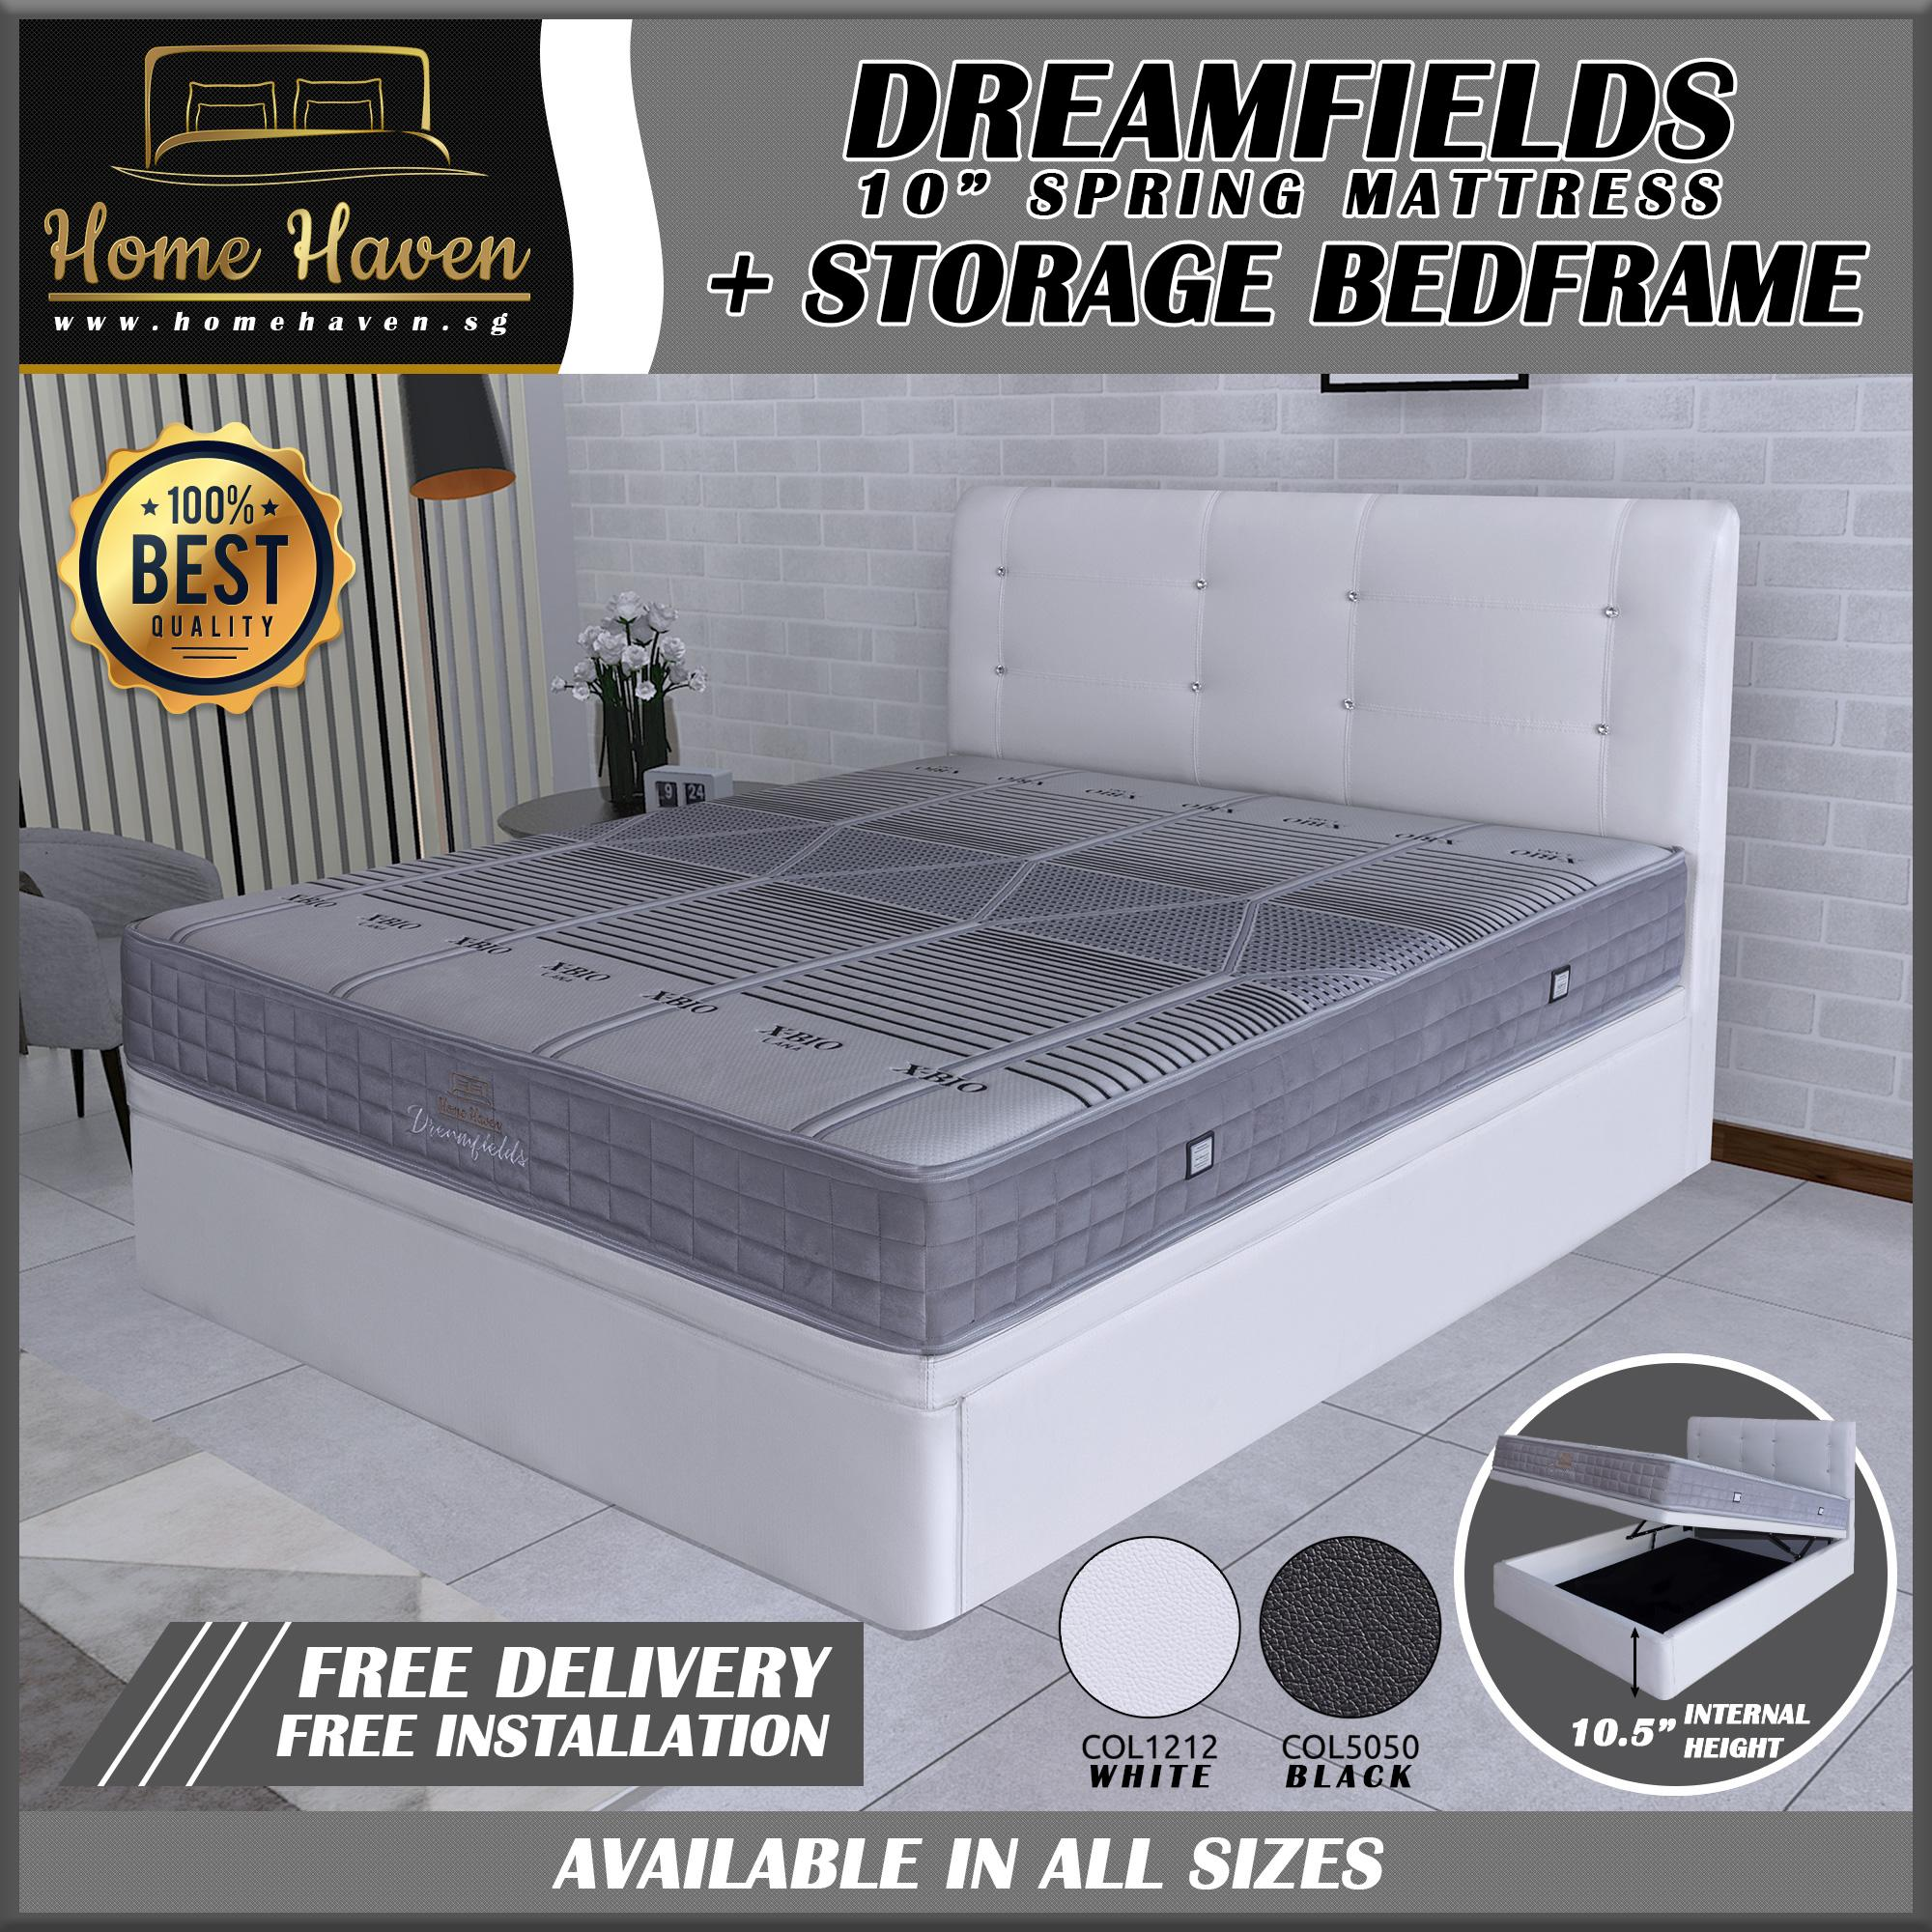 HomeHaven® 8 Inches Spring Mattress with Bigger Storage Bed Frame - DreamFields